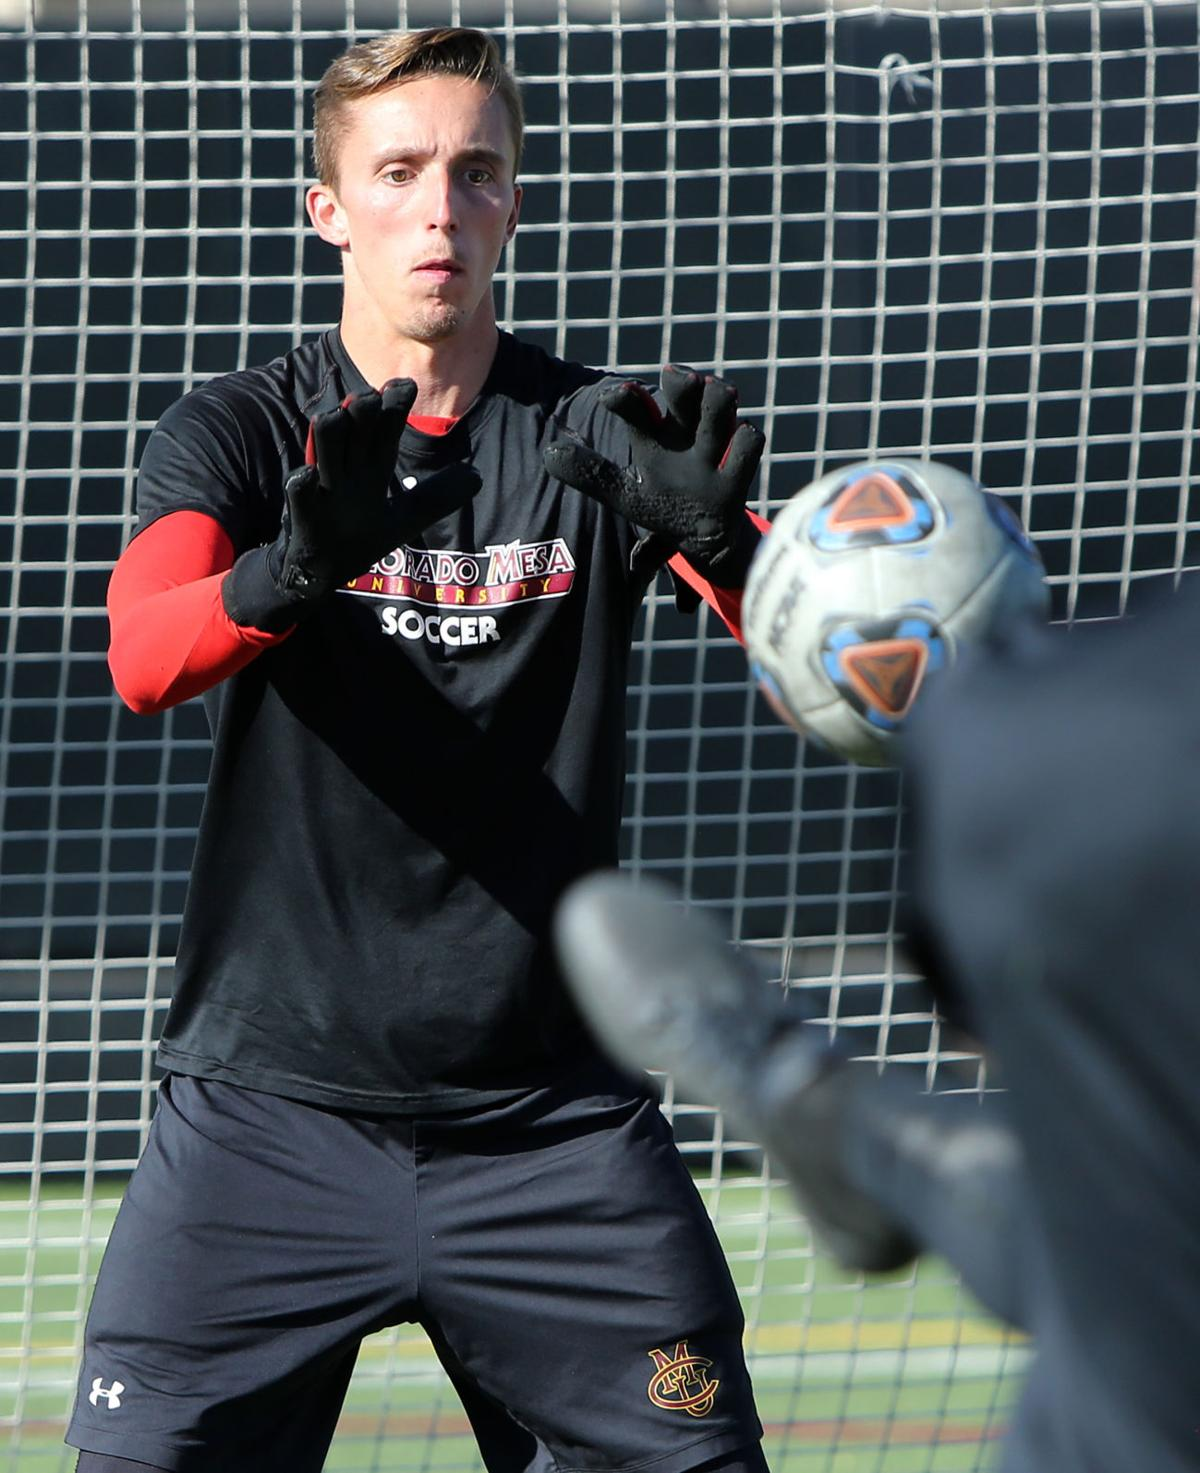 Goalkeeper from UK finally gets his opportunity at CMU